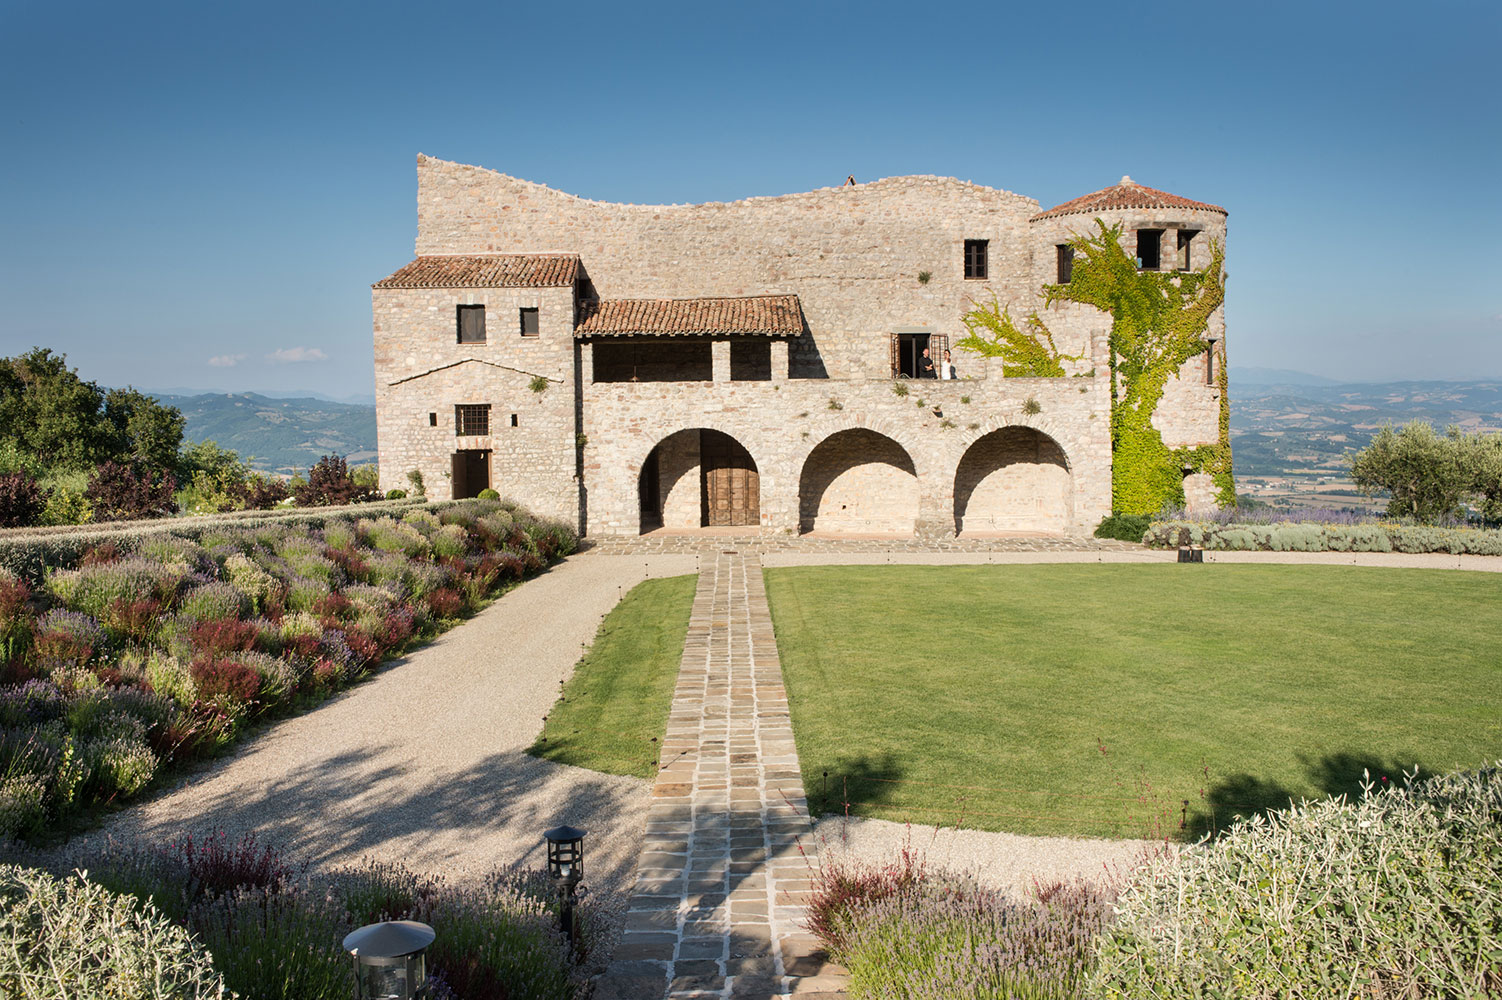 Castello Di Procopio Outdoors 04